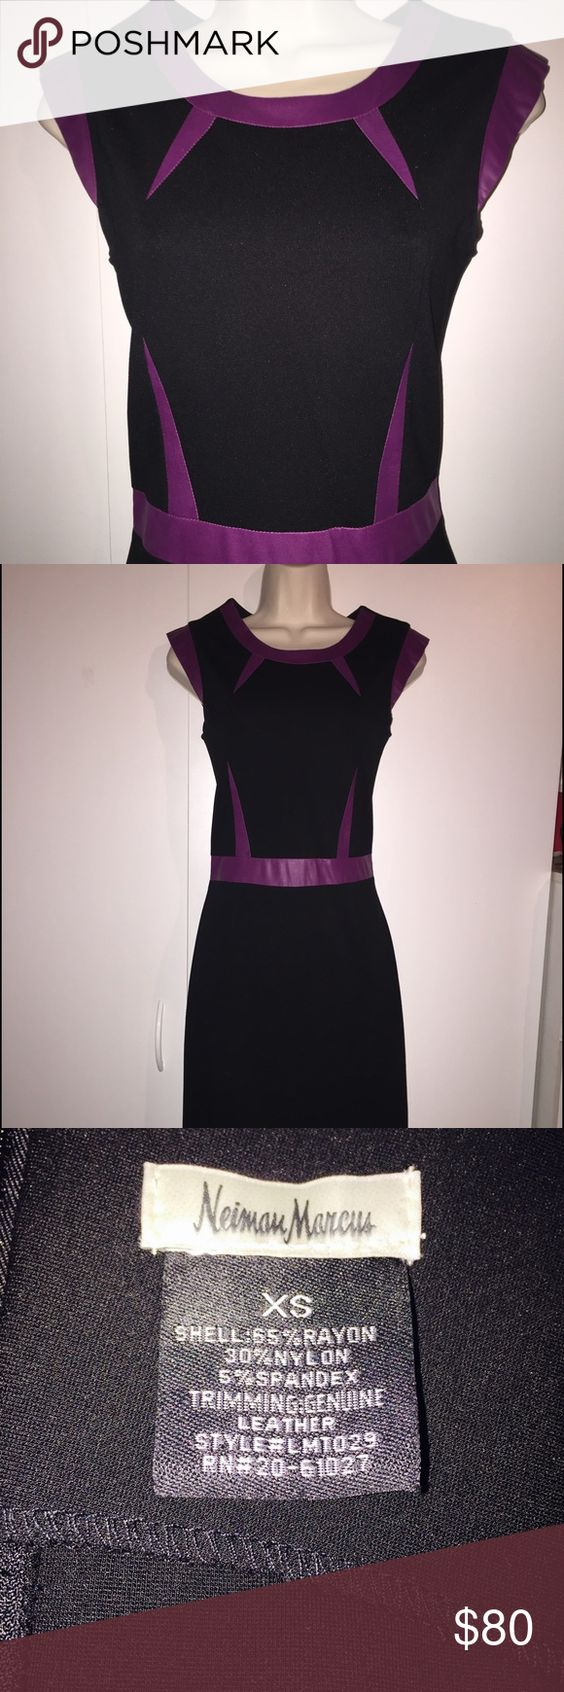 Neiman Marcus Black Dress w Purple Leather Accents This show stopping Neiman Marcus dress will bring you unlimited compliments! Black dress with genuine leather purple accents which are extremely figure flattering! Size XS. Comes from a non-smoking home. Neiman Marcus Dresses